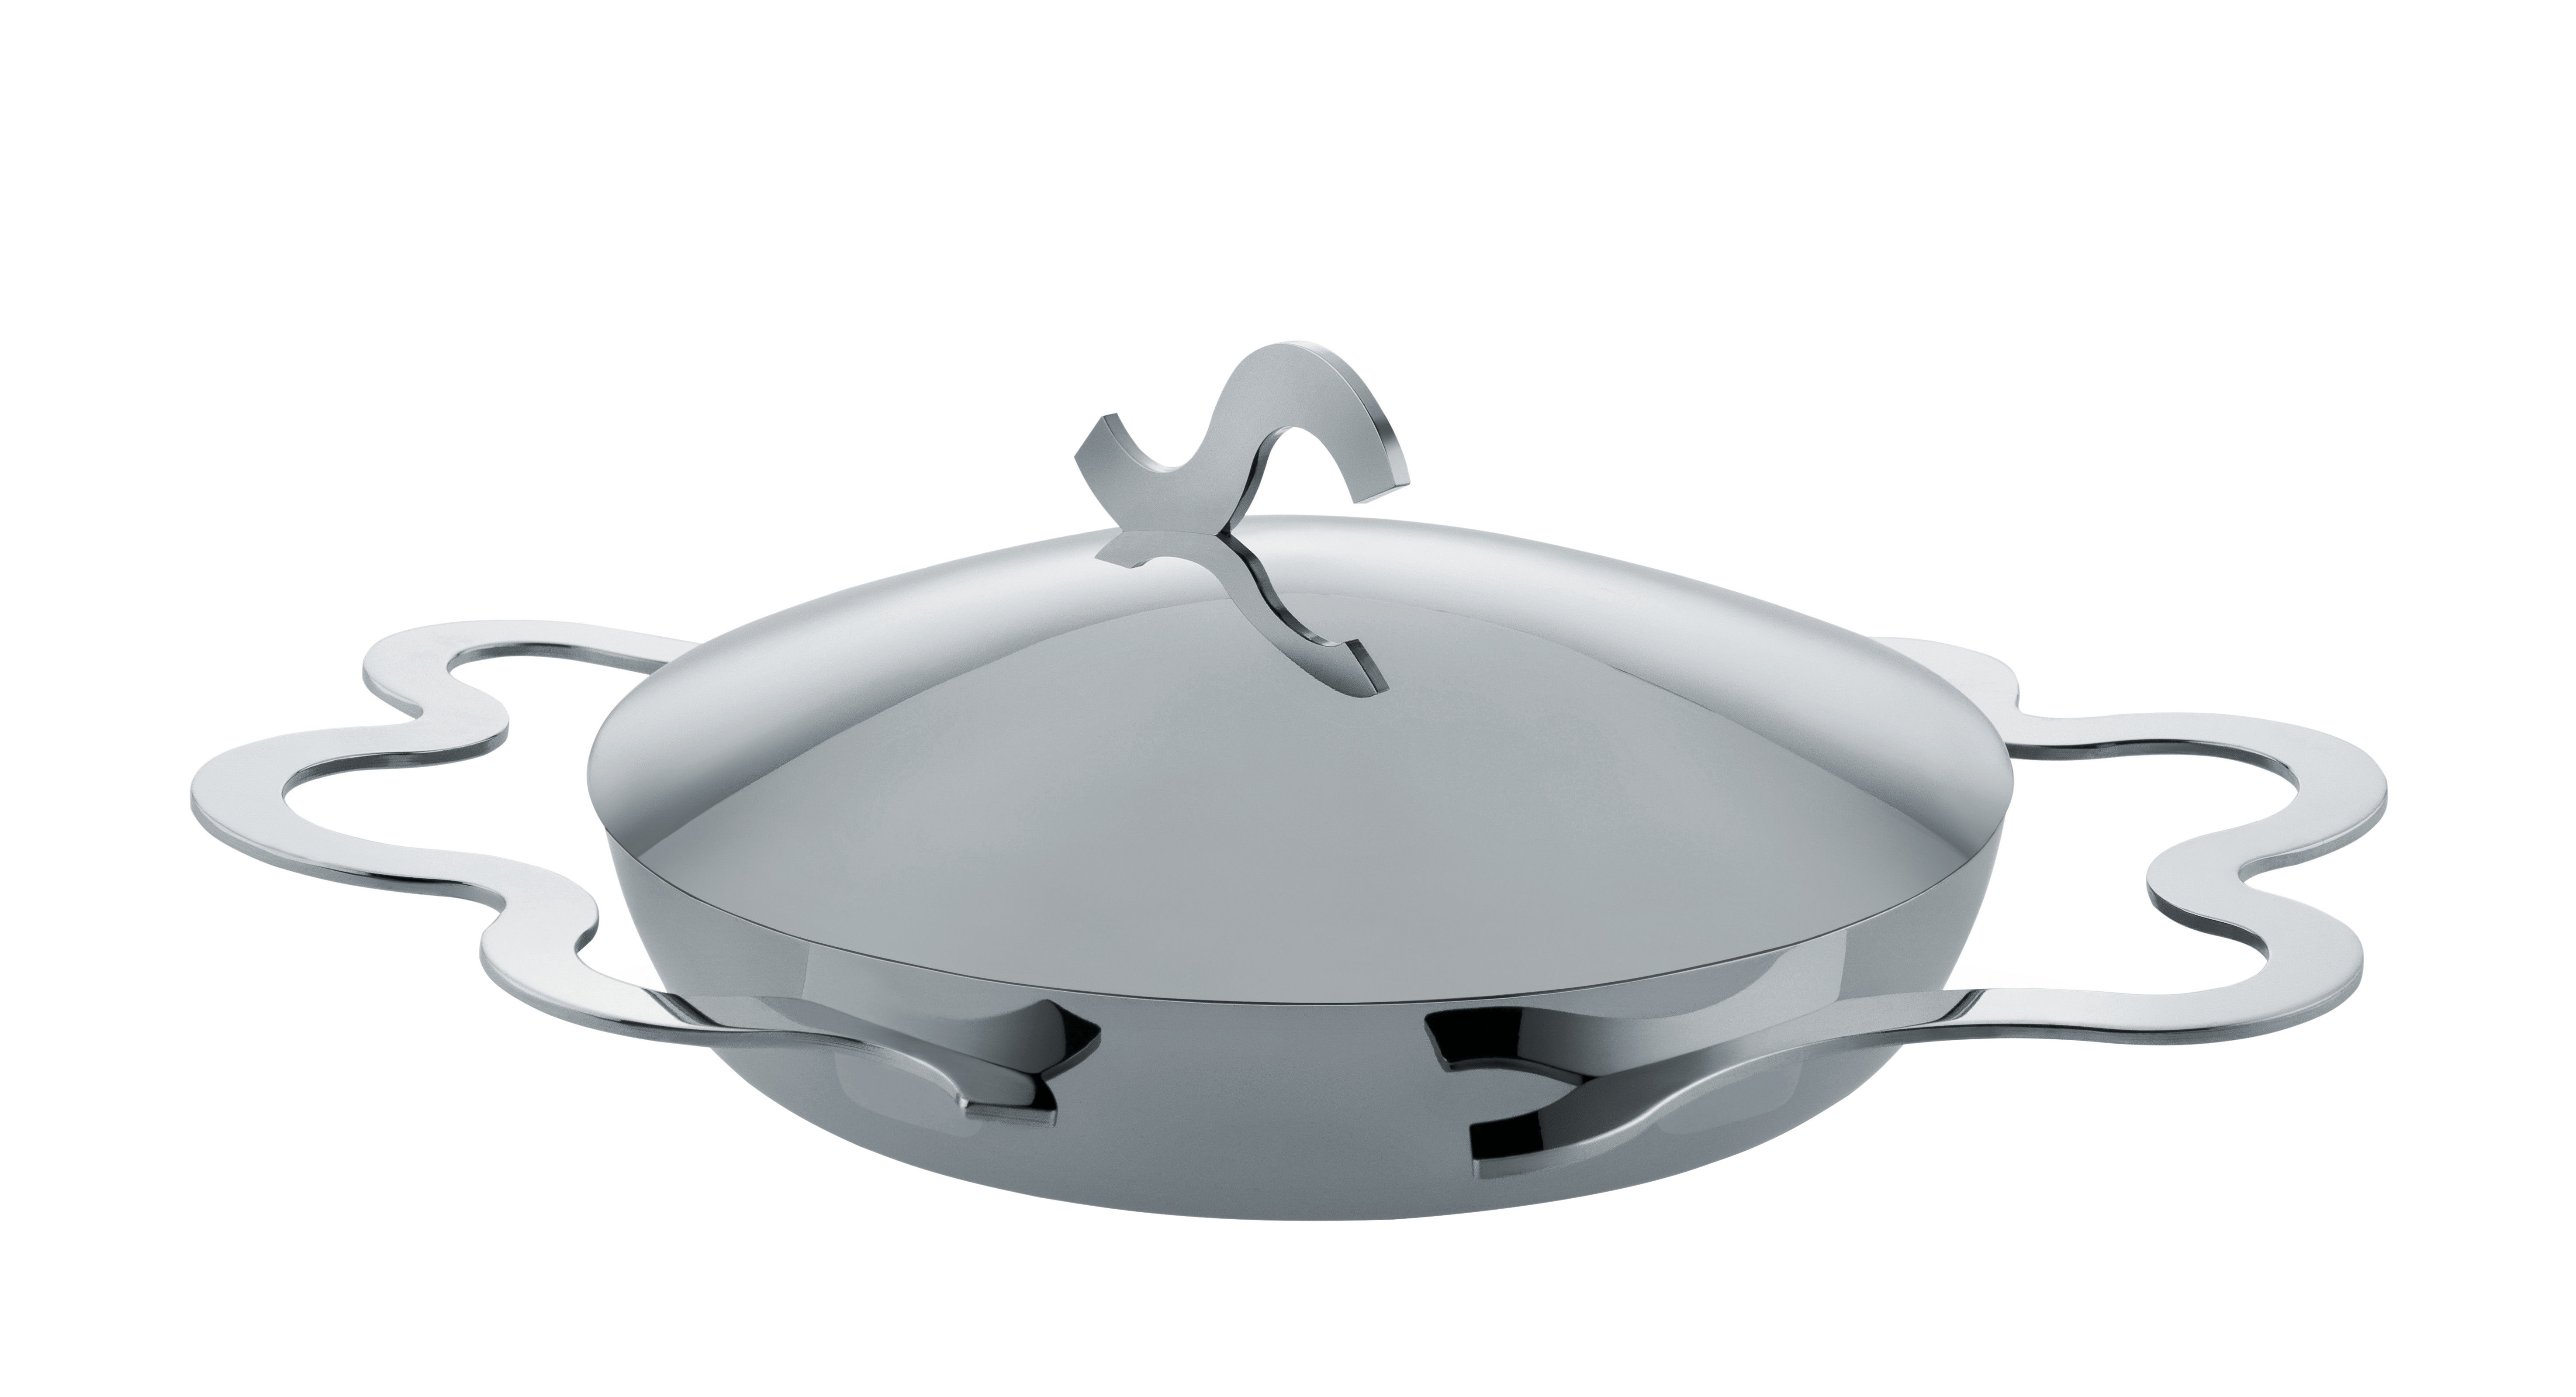 Kitchenware - Pots & Pans - Tegamino Egg cooking dish - / Ø 17 cm by Alessi - Steel - Plywood